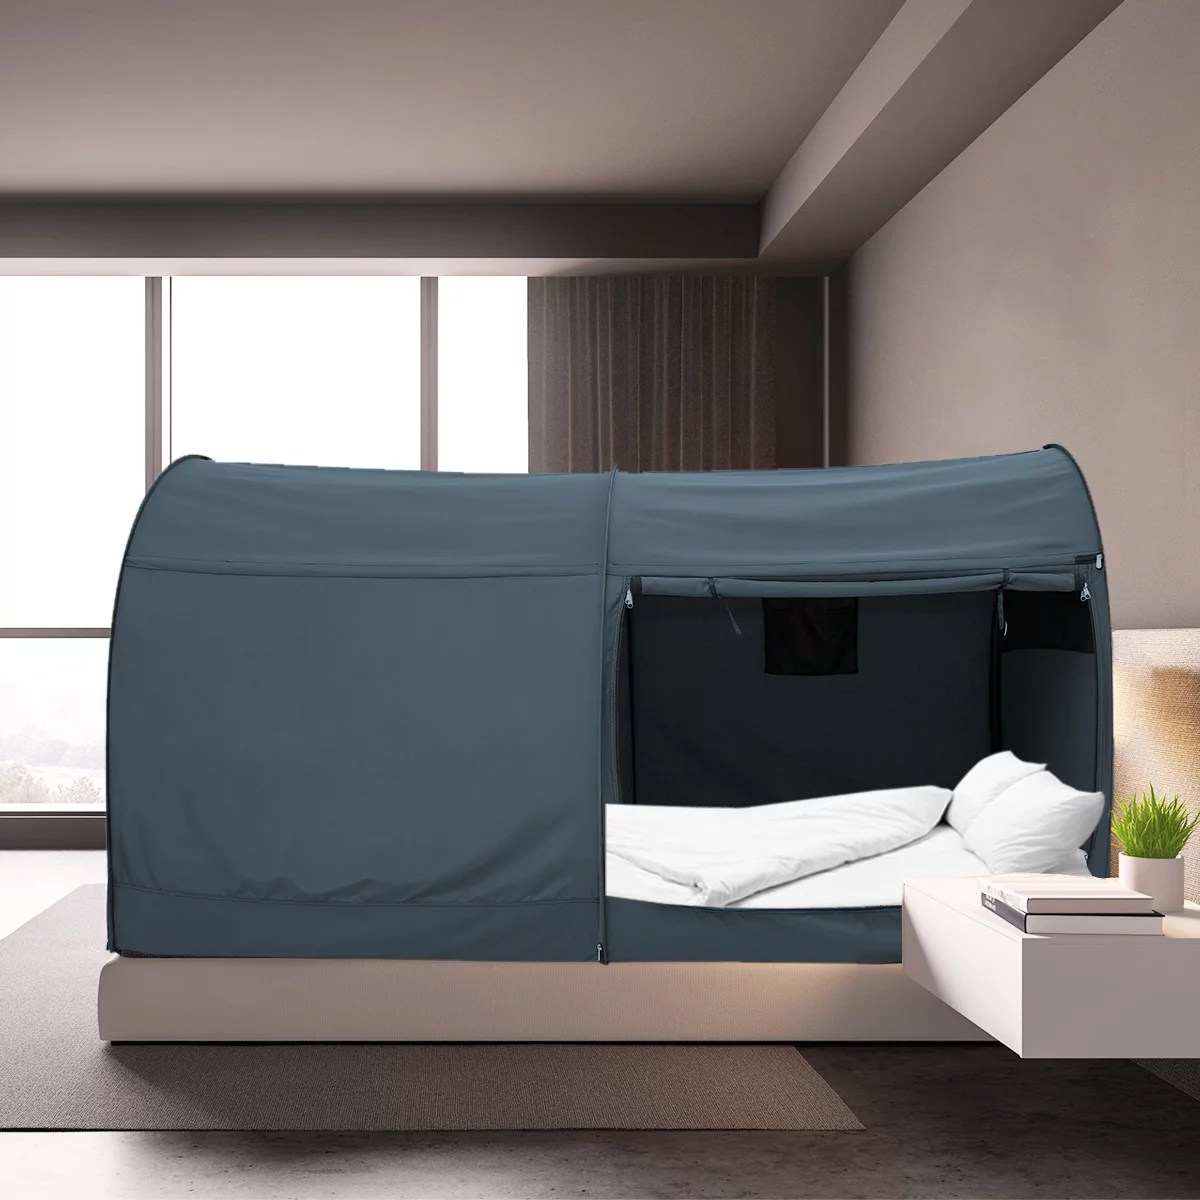 alvantor bed canopy tents privacy space queen size sleeping tents indoor pop up curtains grey cottage mattress not included from walmart